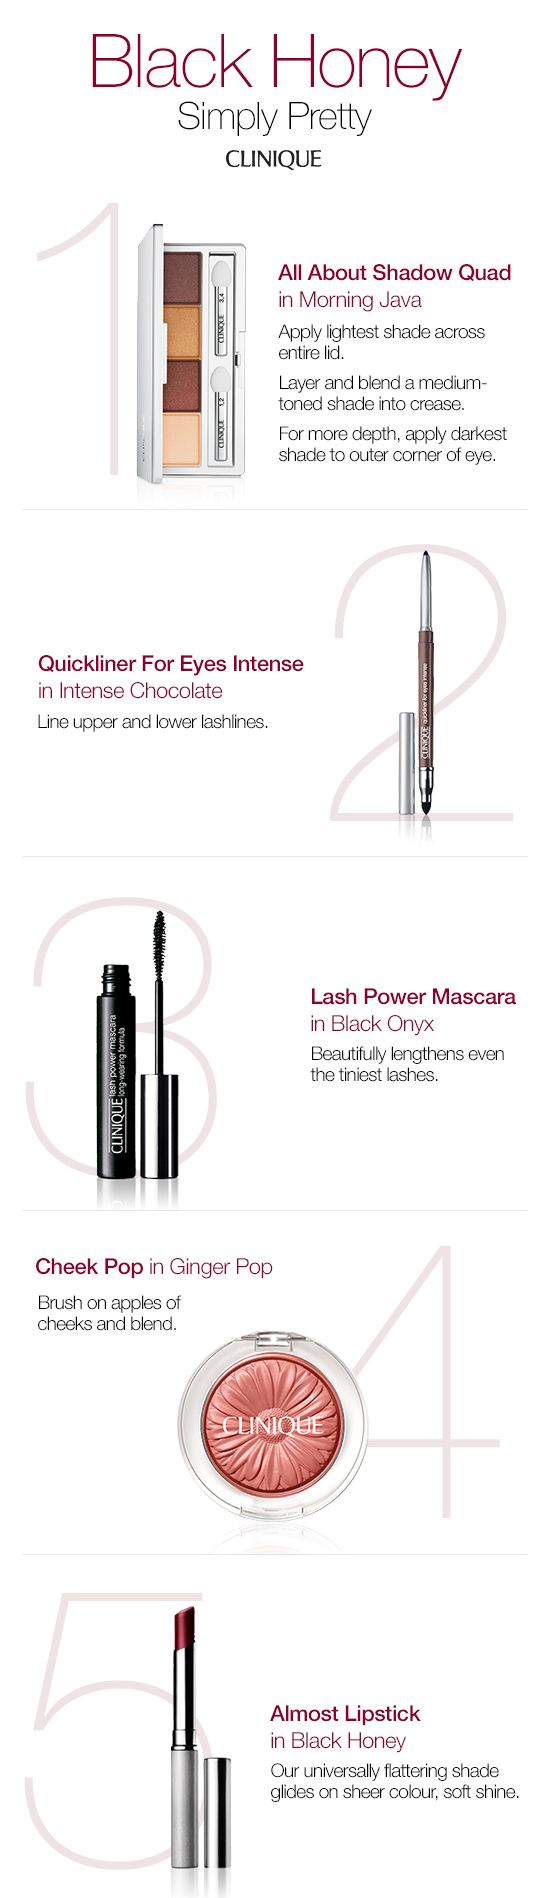 Create a simply pretty look inspired by our cult classic lip shade, Black Honey.  1. All About Shadow Quad in Morning Java 2. Quickliner For Eyes Intense in Intense Chocolate 3. Lash Power Mascara in Black Onyx 4. Cheek Pop in Ginger Pop 5. Almost Lipstick in Black Honey  #BlackHoney #Eyeshadow #Eyeliner #Mascara #Blush #Lipstick #Lipgloss #Makeup #Beauty #Clinique